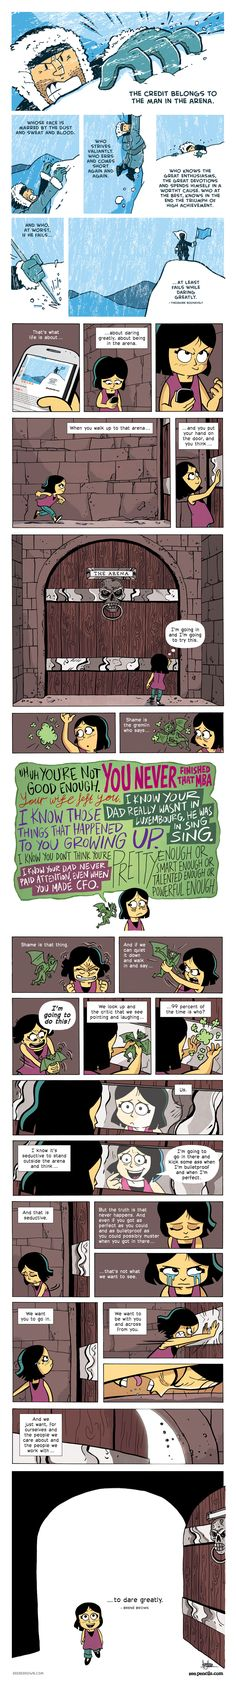 2013-12-09-brenebrown - daring interview series with cartoonist who visualizes her speech and other inspirations